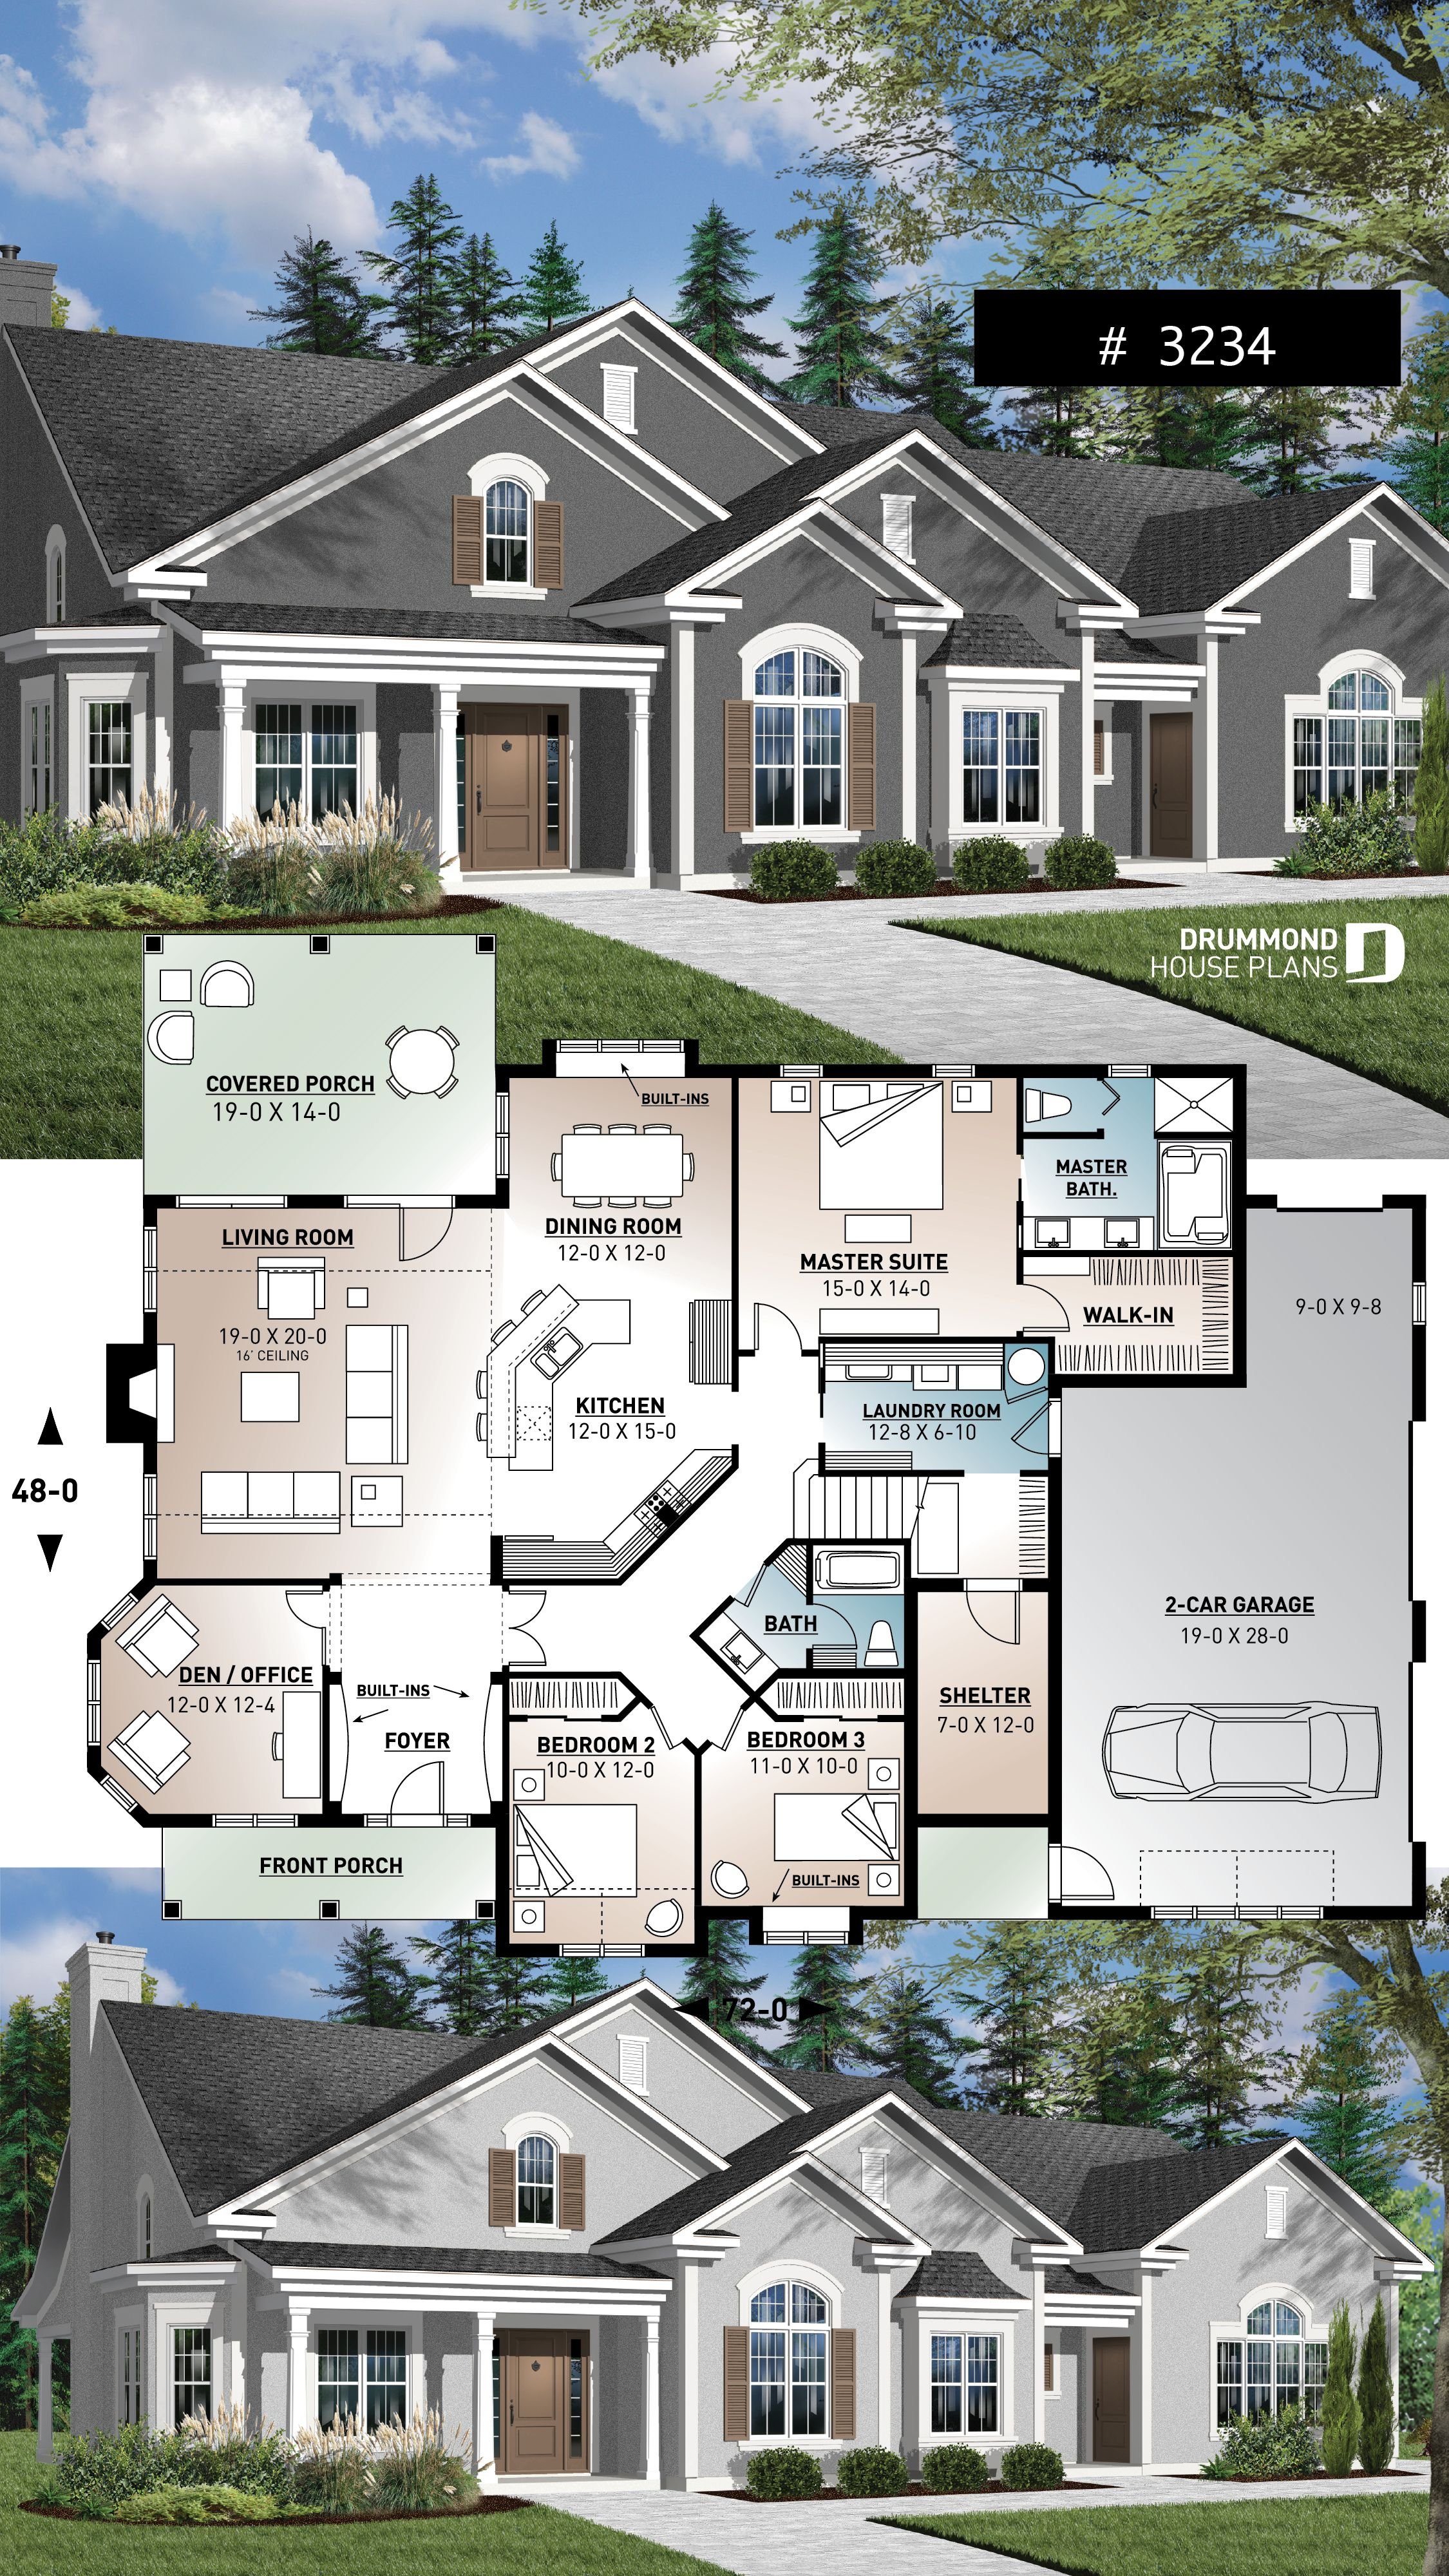 Discover The Plan 3234 Fairweather Which Will Please You For Its 3 4 Bedrooms And For Its Ranch Styles Family House Plans Ranch House Plans Sims House Plans